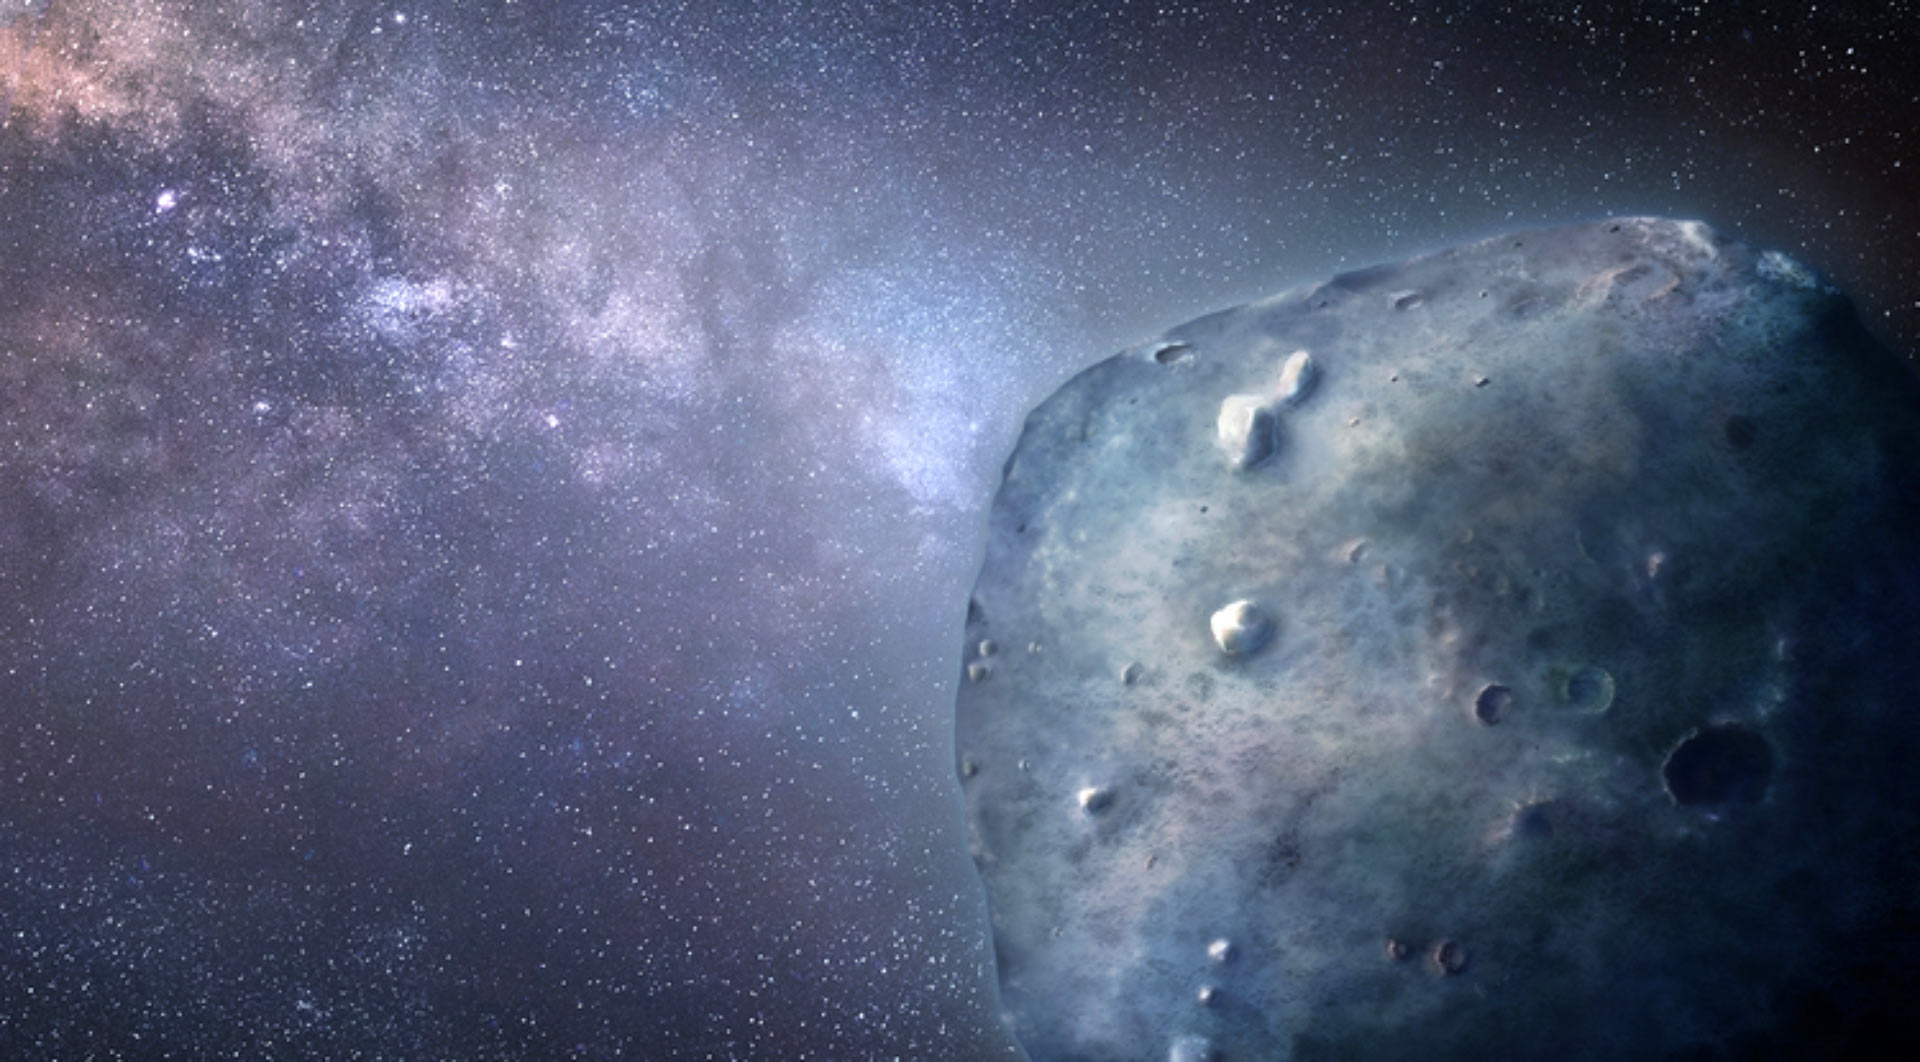 Above Ground is dangerously low will pass three huge asteroid